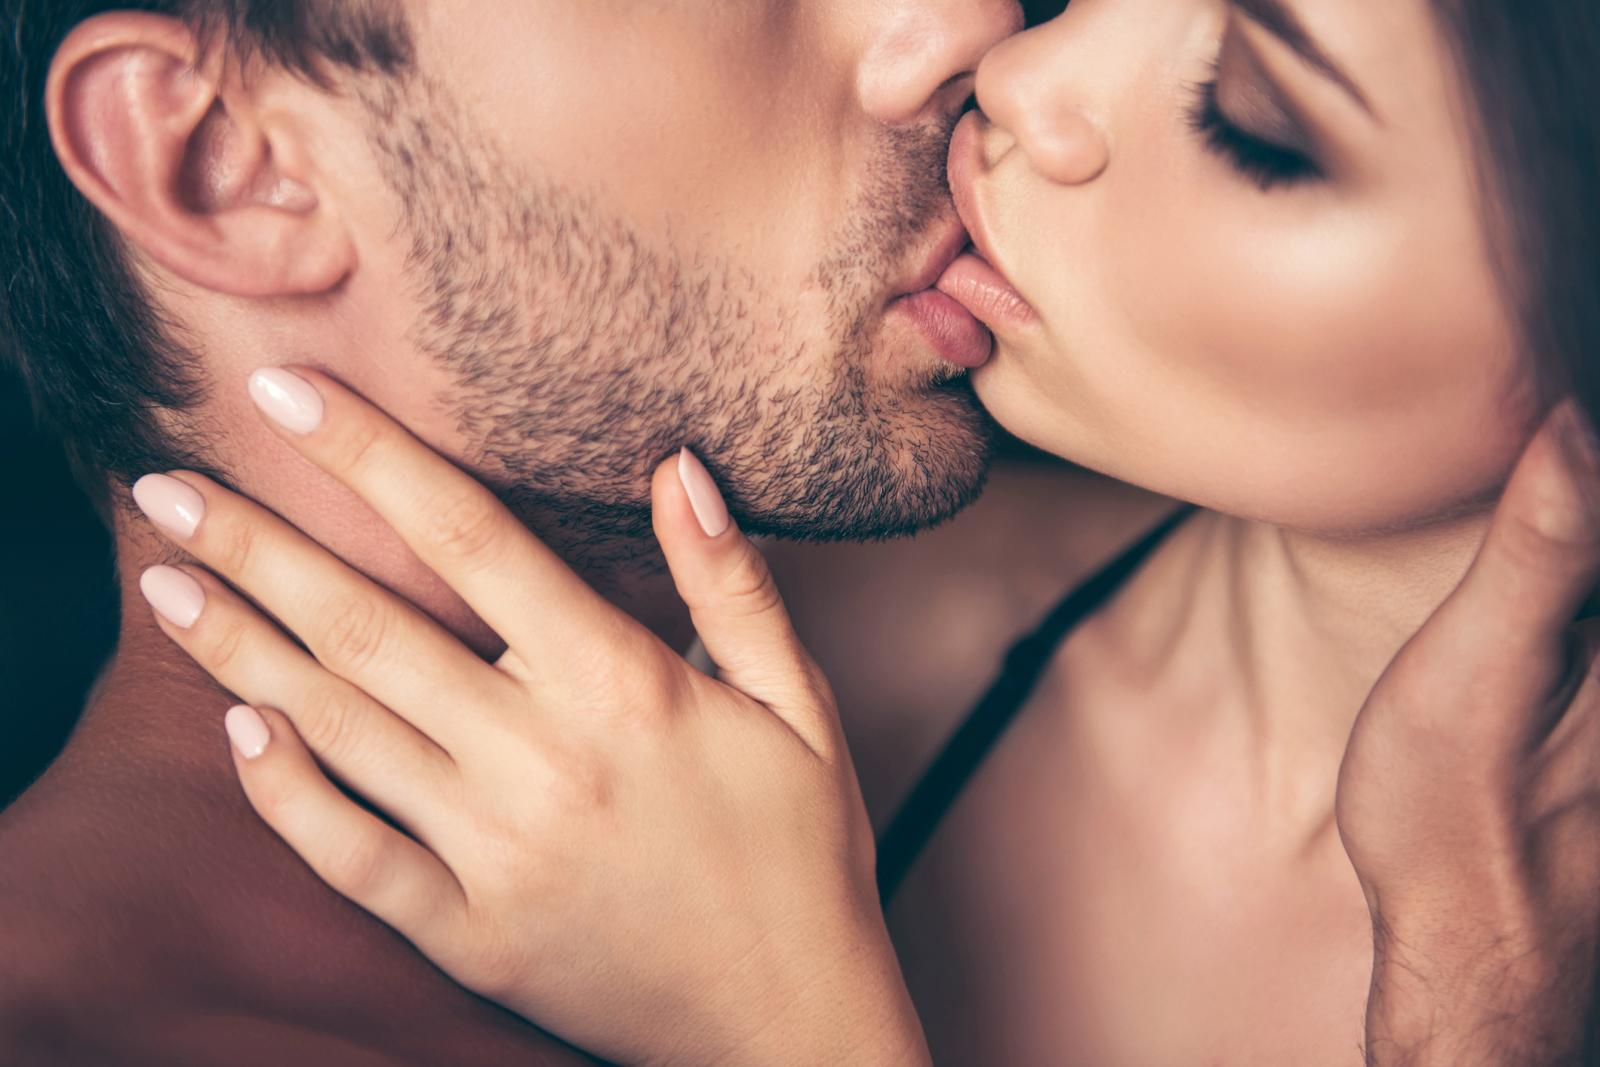 How to French Kiss in 7 Easy Steps | LoveToKnow